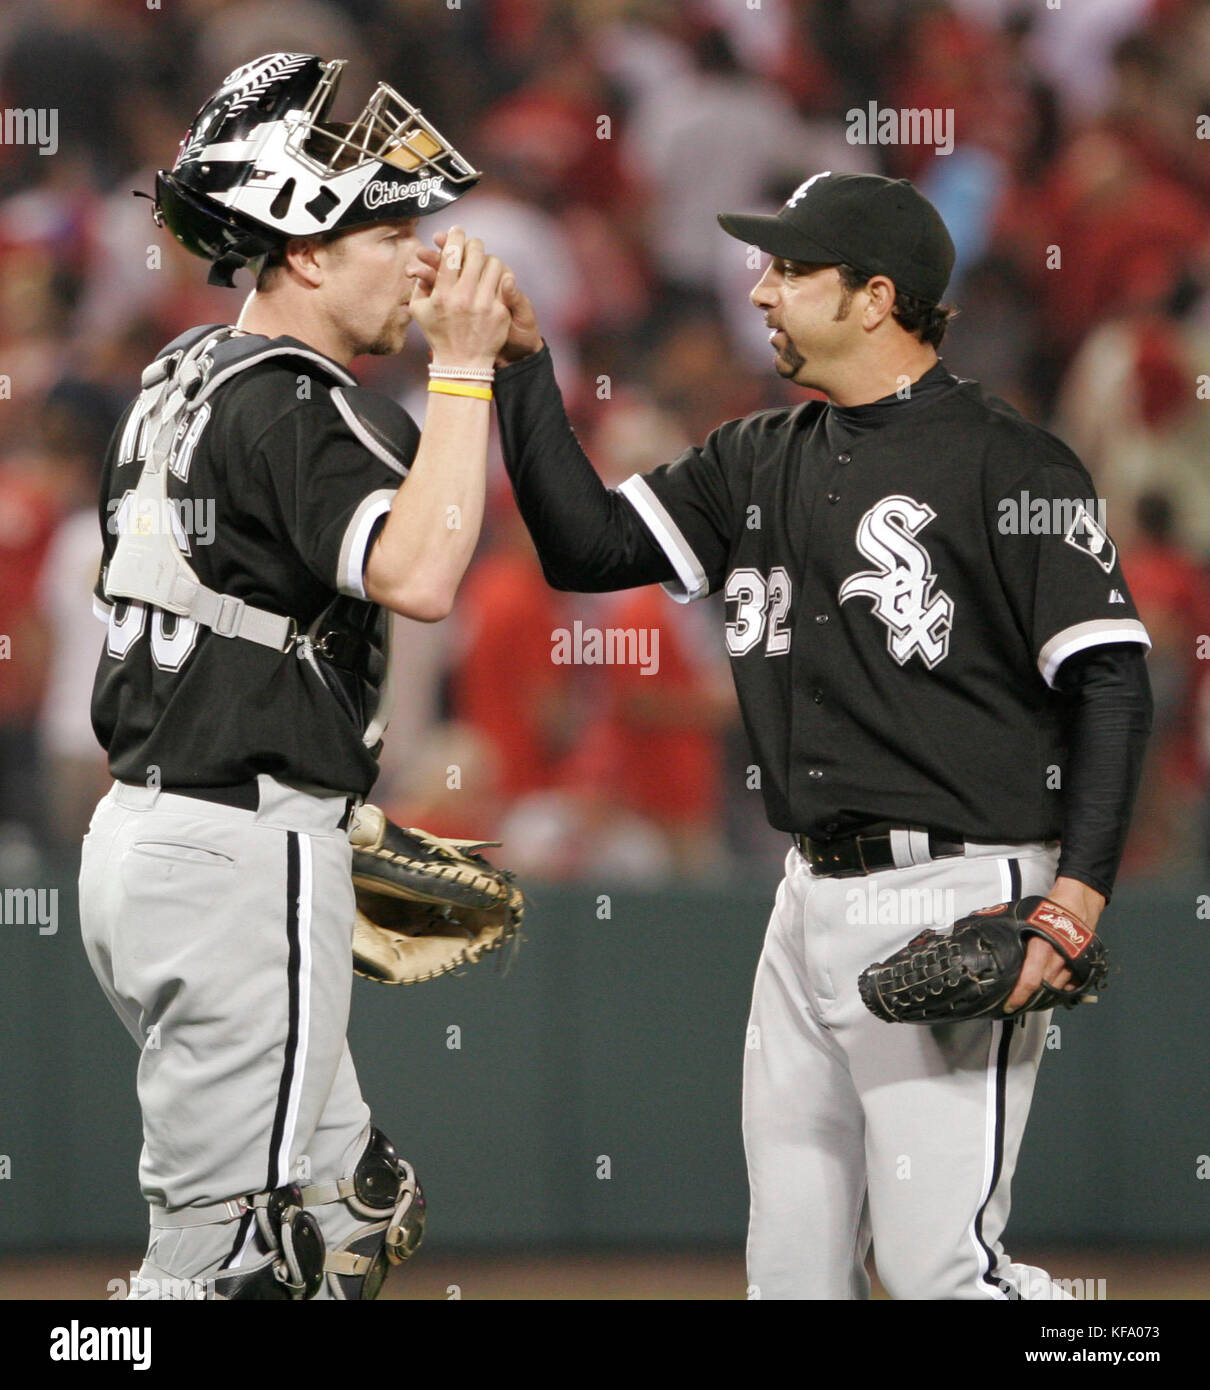 Chicago White Sox relief pitcher Dustin Hermanson, right, is congratulated by catcher Chris Widger after his save - Stock Image